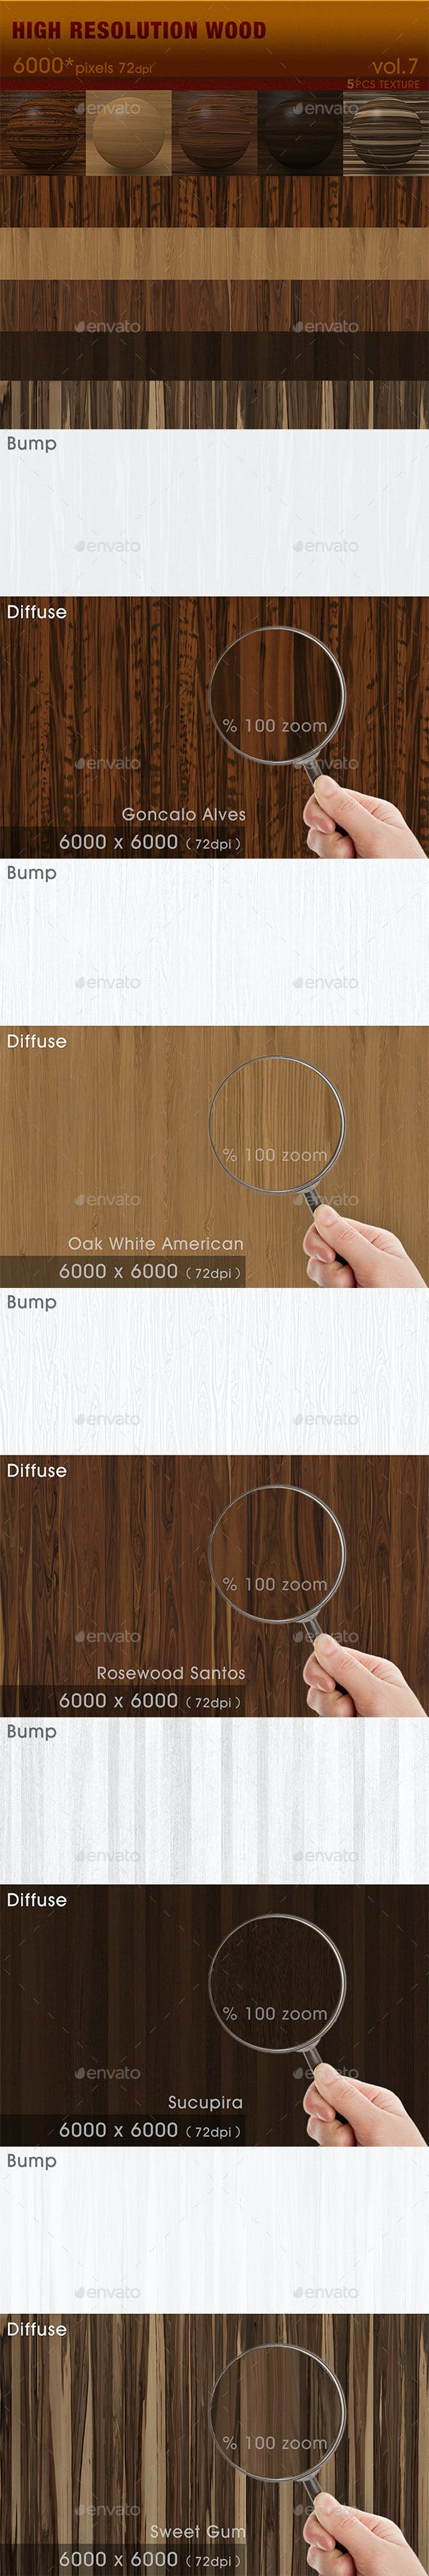 High Resolution Wood Textures Vol. 7 - 3DOcean Item for Sale